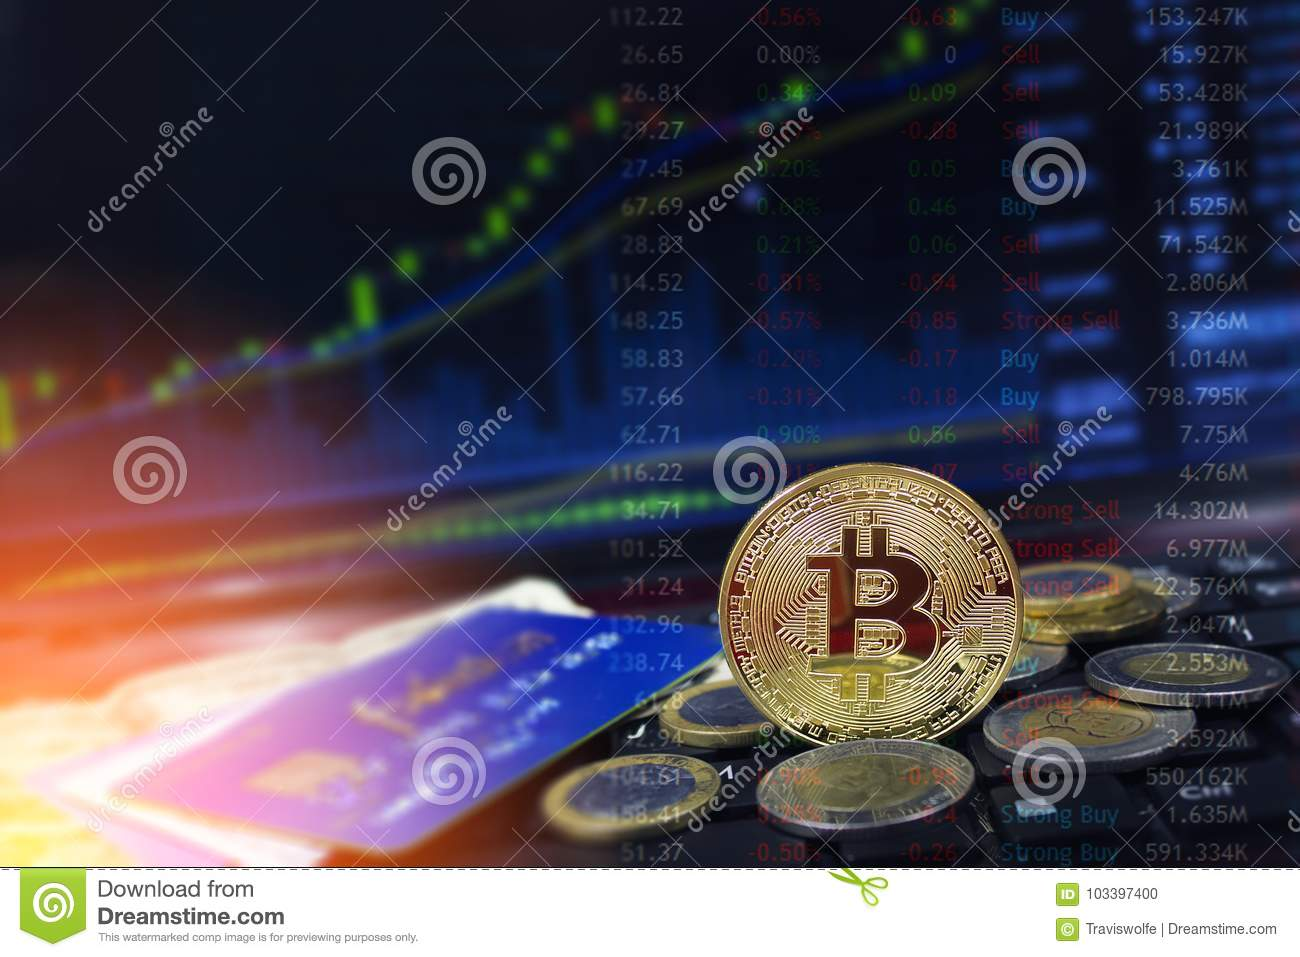 Bitcoin currency with credit cards and coins on laptop keyboard with rising price charts in the background.